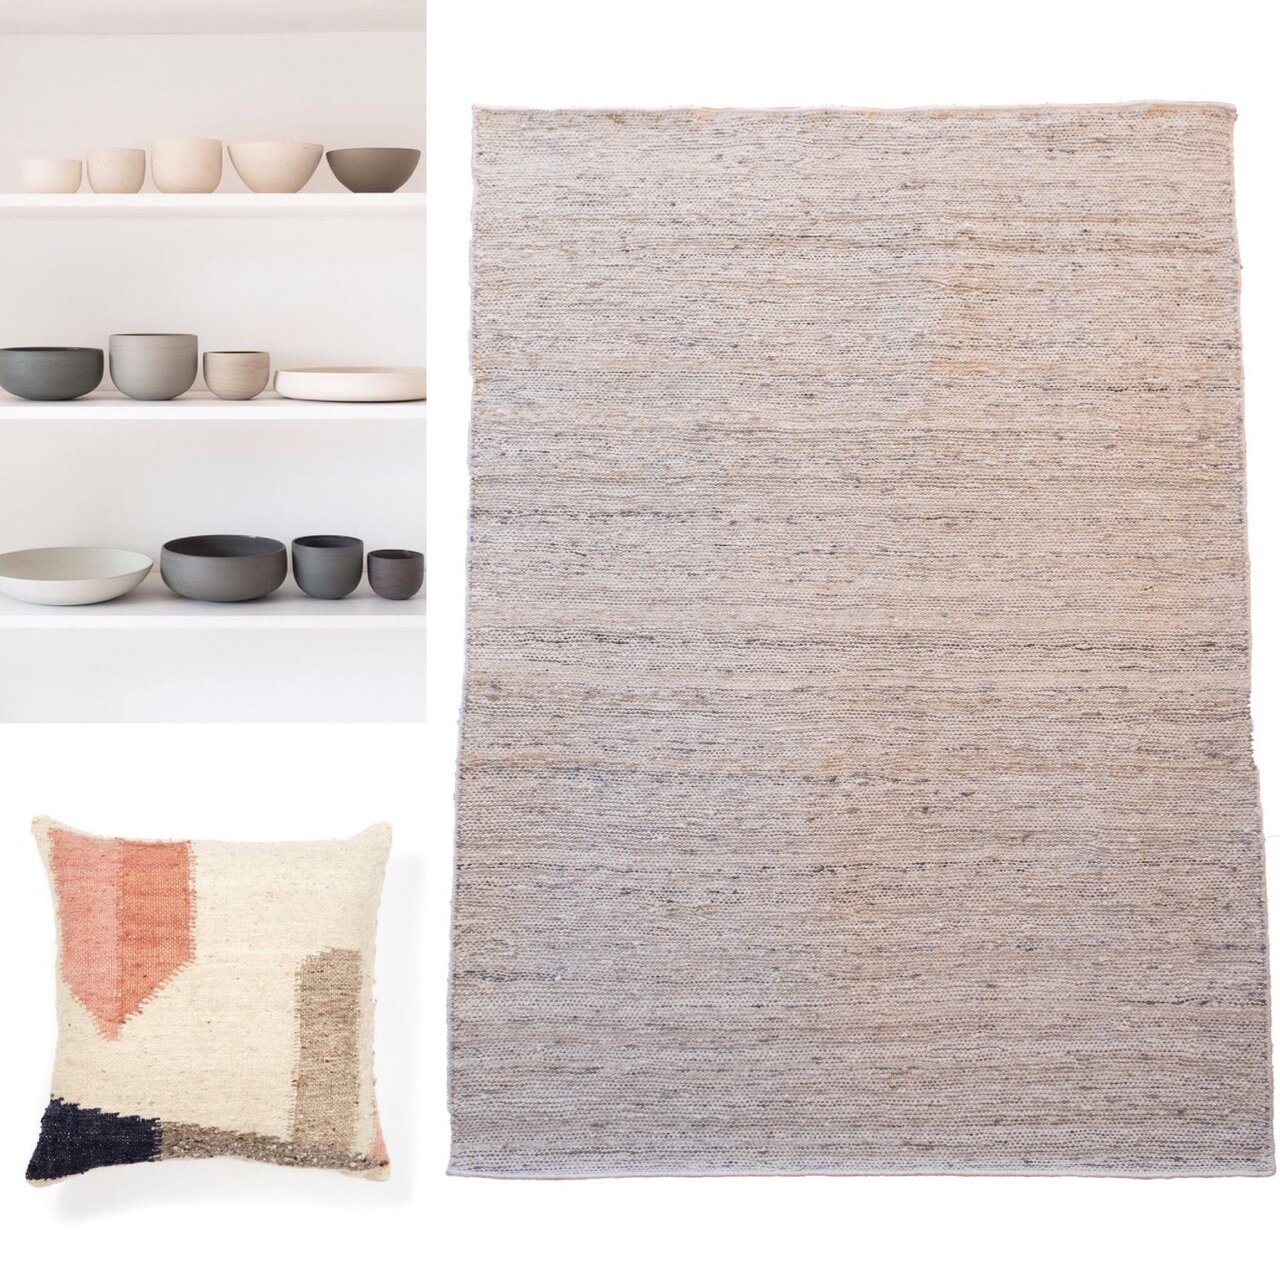 Earthy tones and textures bring harmony to your home, the perfect imperfections of hand-spinning and weaving, give character and authenticity. Ceramics and cushion are palette and design inspirations from our Pinterest boards. Rug is river weave karakul in white + silver, beautiful irregular natural colours running through.